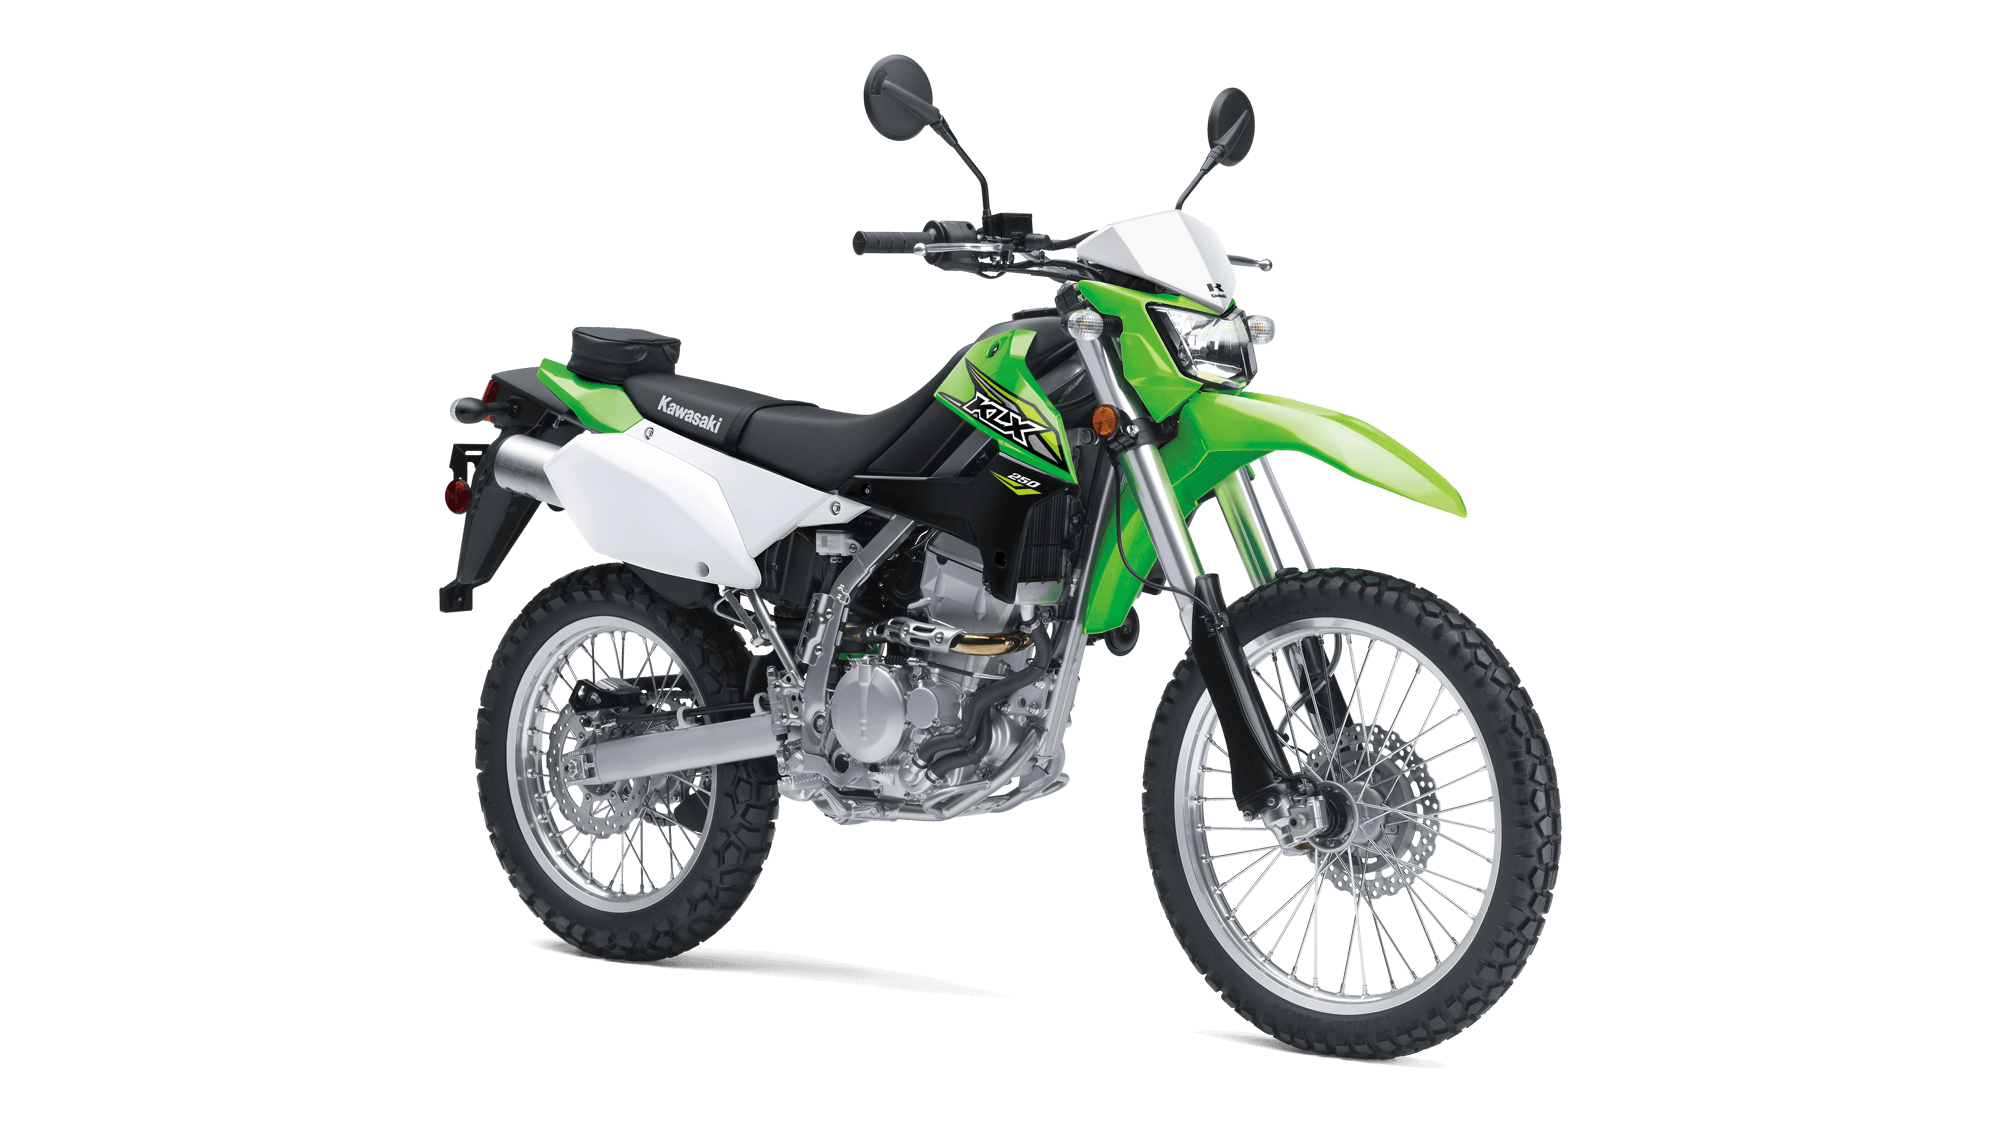 2018 kawasaki klx250 likely to launch in india at auto expo 2018